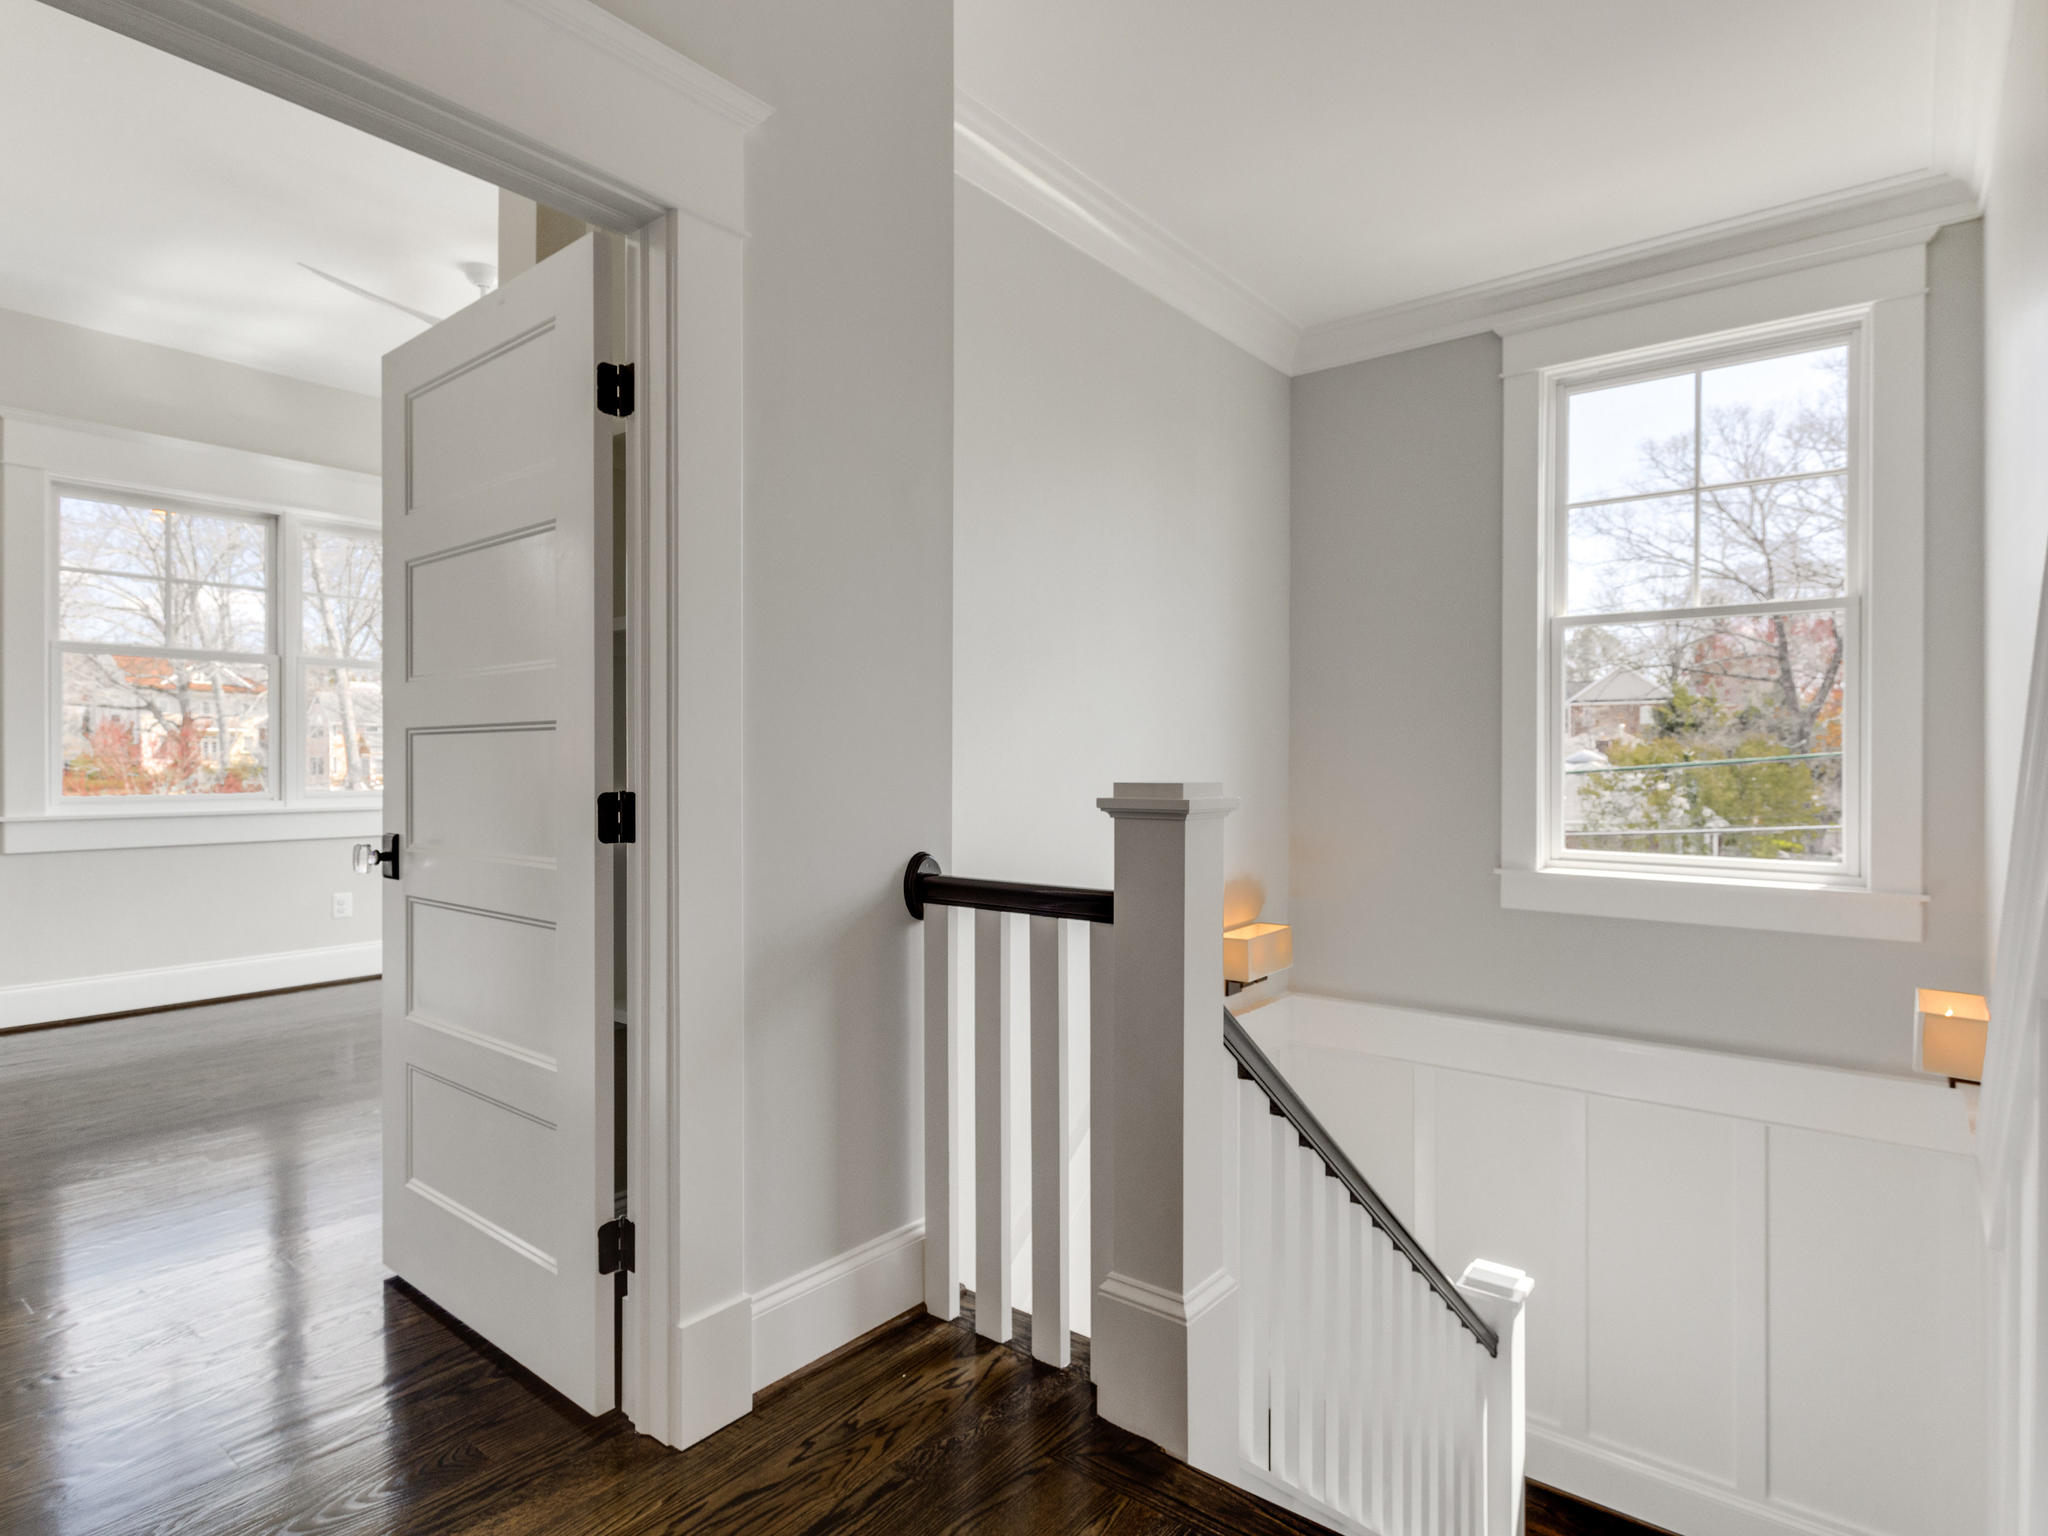 Upper floor. Top of landing. 10 foot ceilings on all 3 levels. Custom Home by Custom Builder, North Arlington, VA 22207